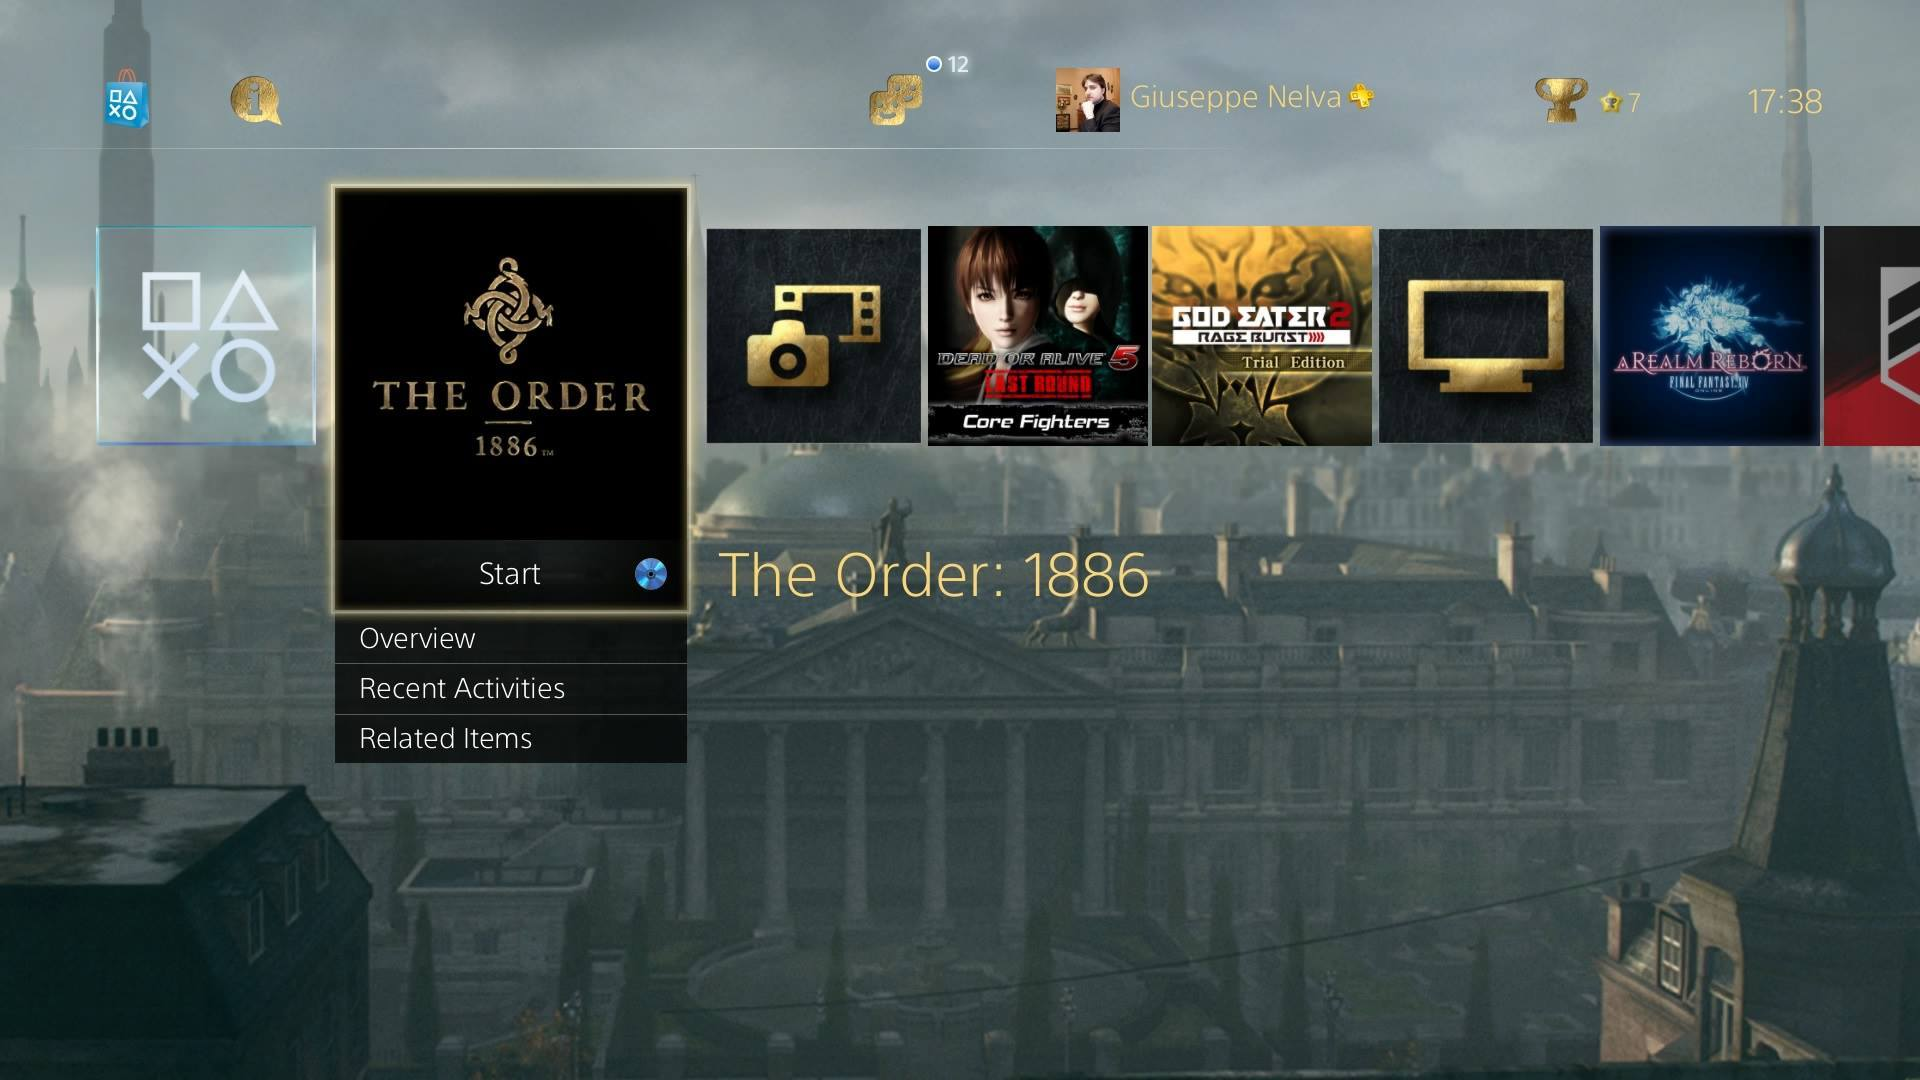 The Order 1886 Free Ps4 Dynamic Theme From Promo Website